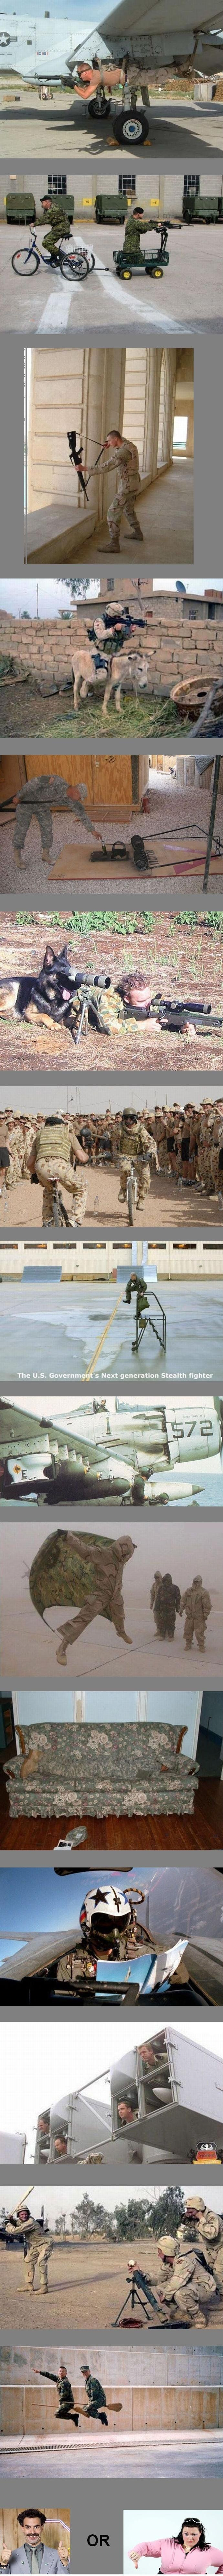 Soldiers screwing around #funny